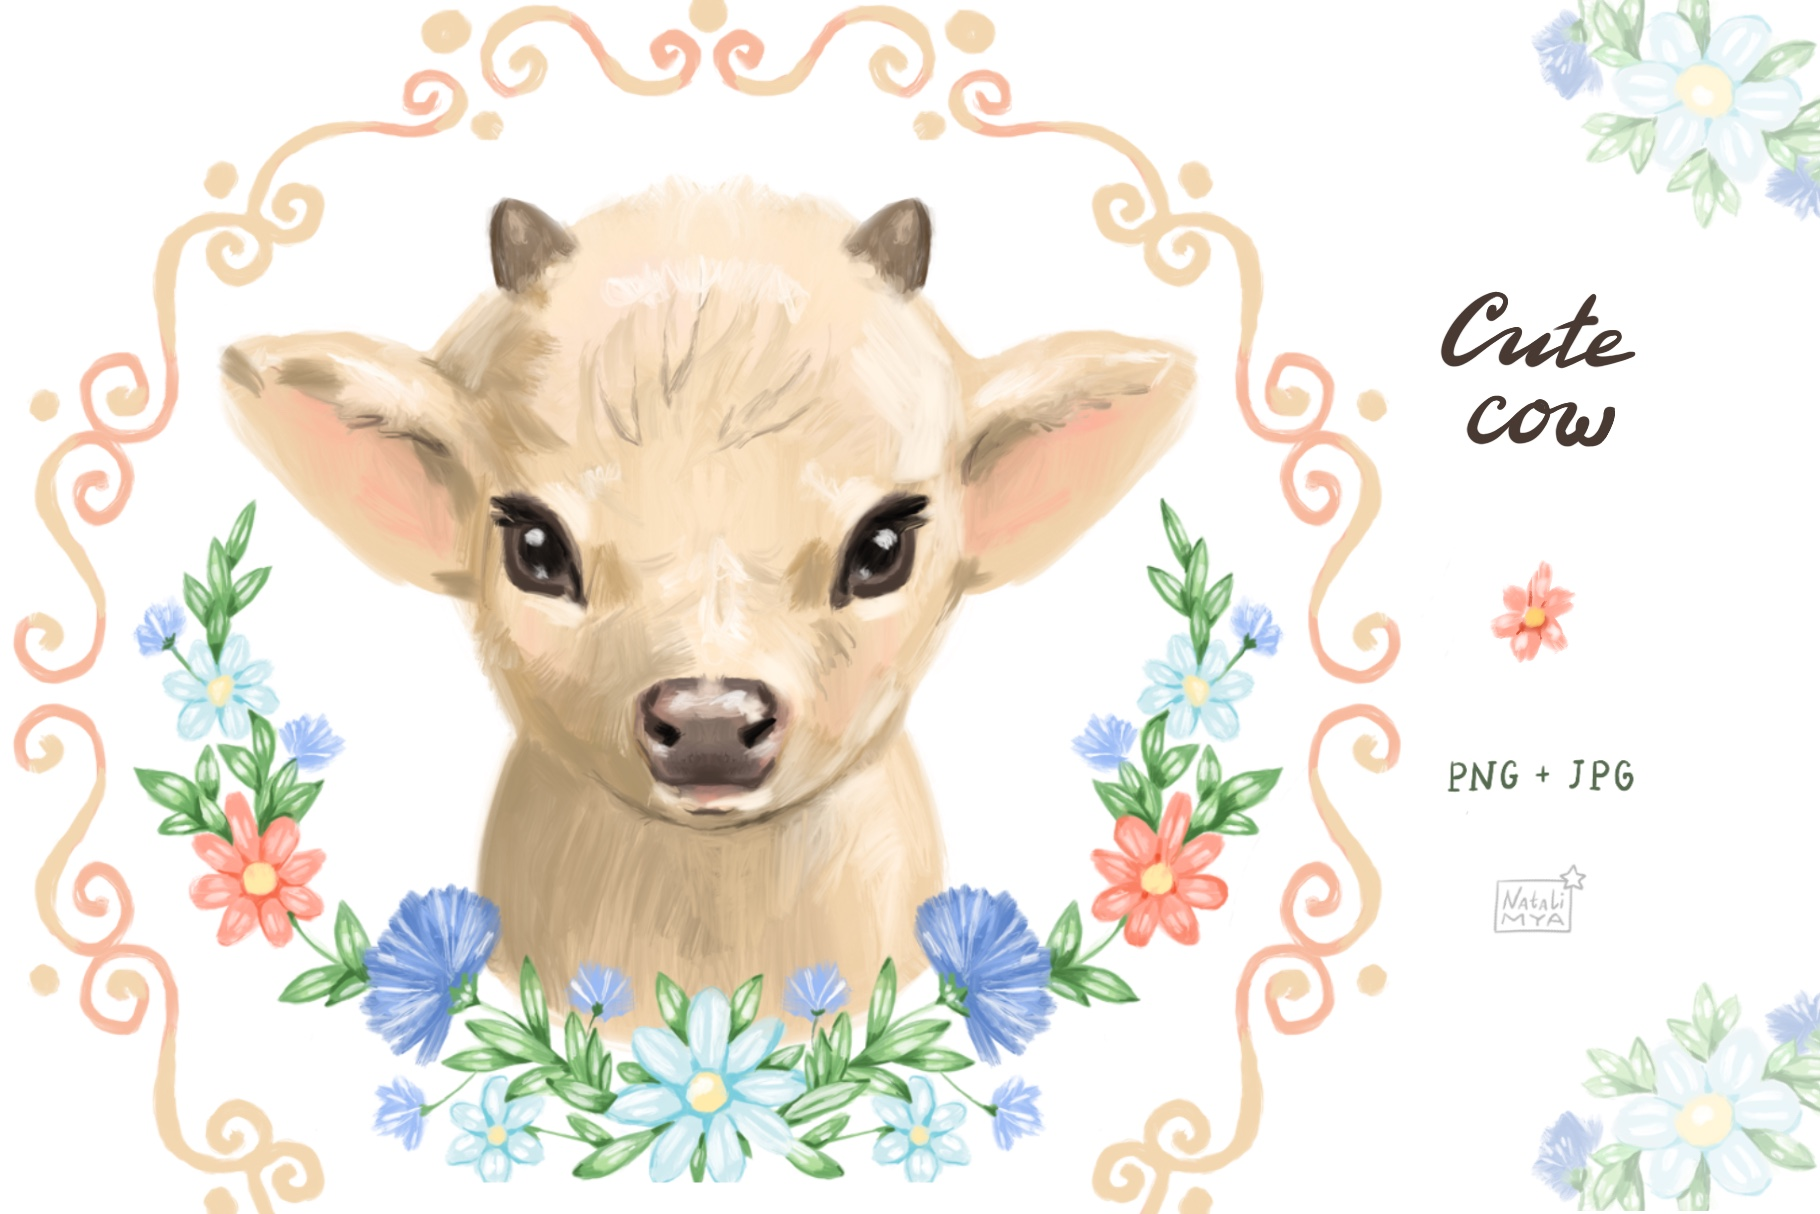 Cute cow clipart example image 1